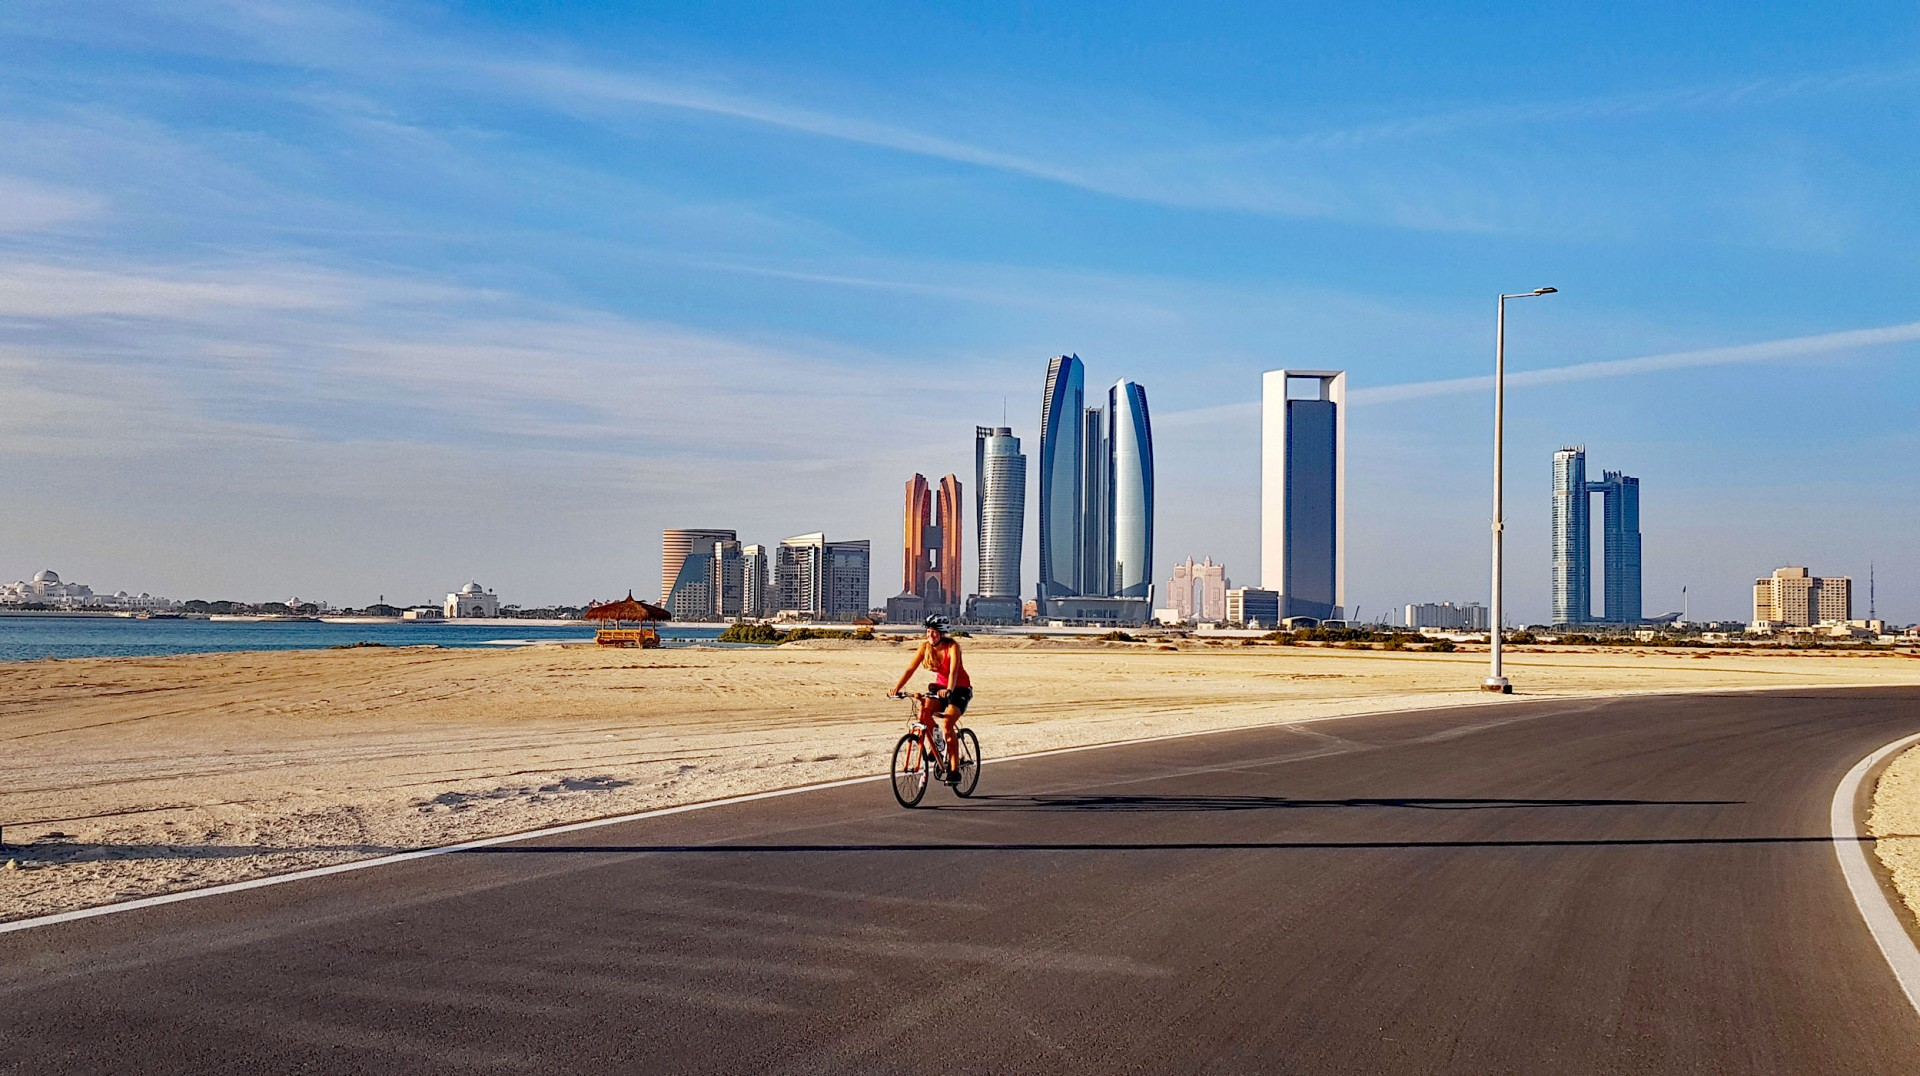 Cycling in Abu Dhabi - Find the best Cycle Tracks across Abu